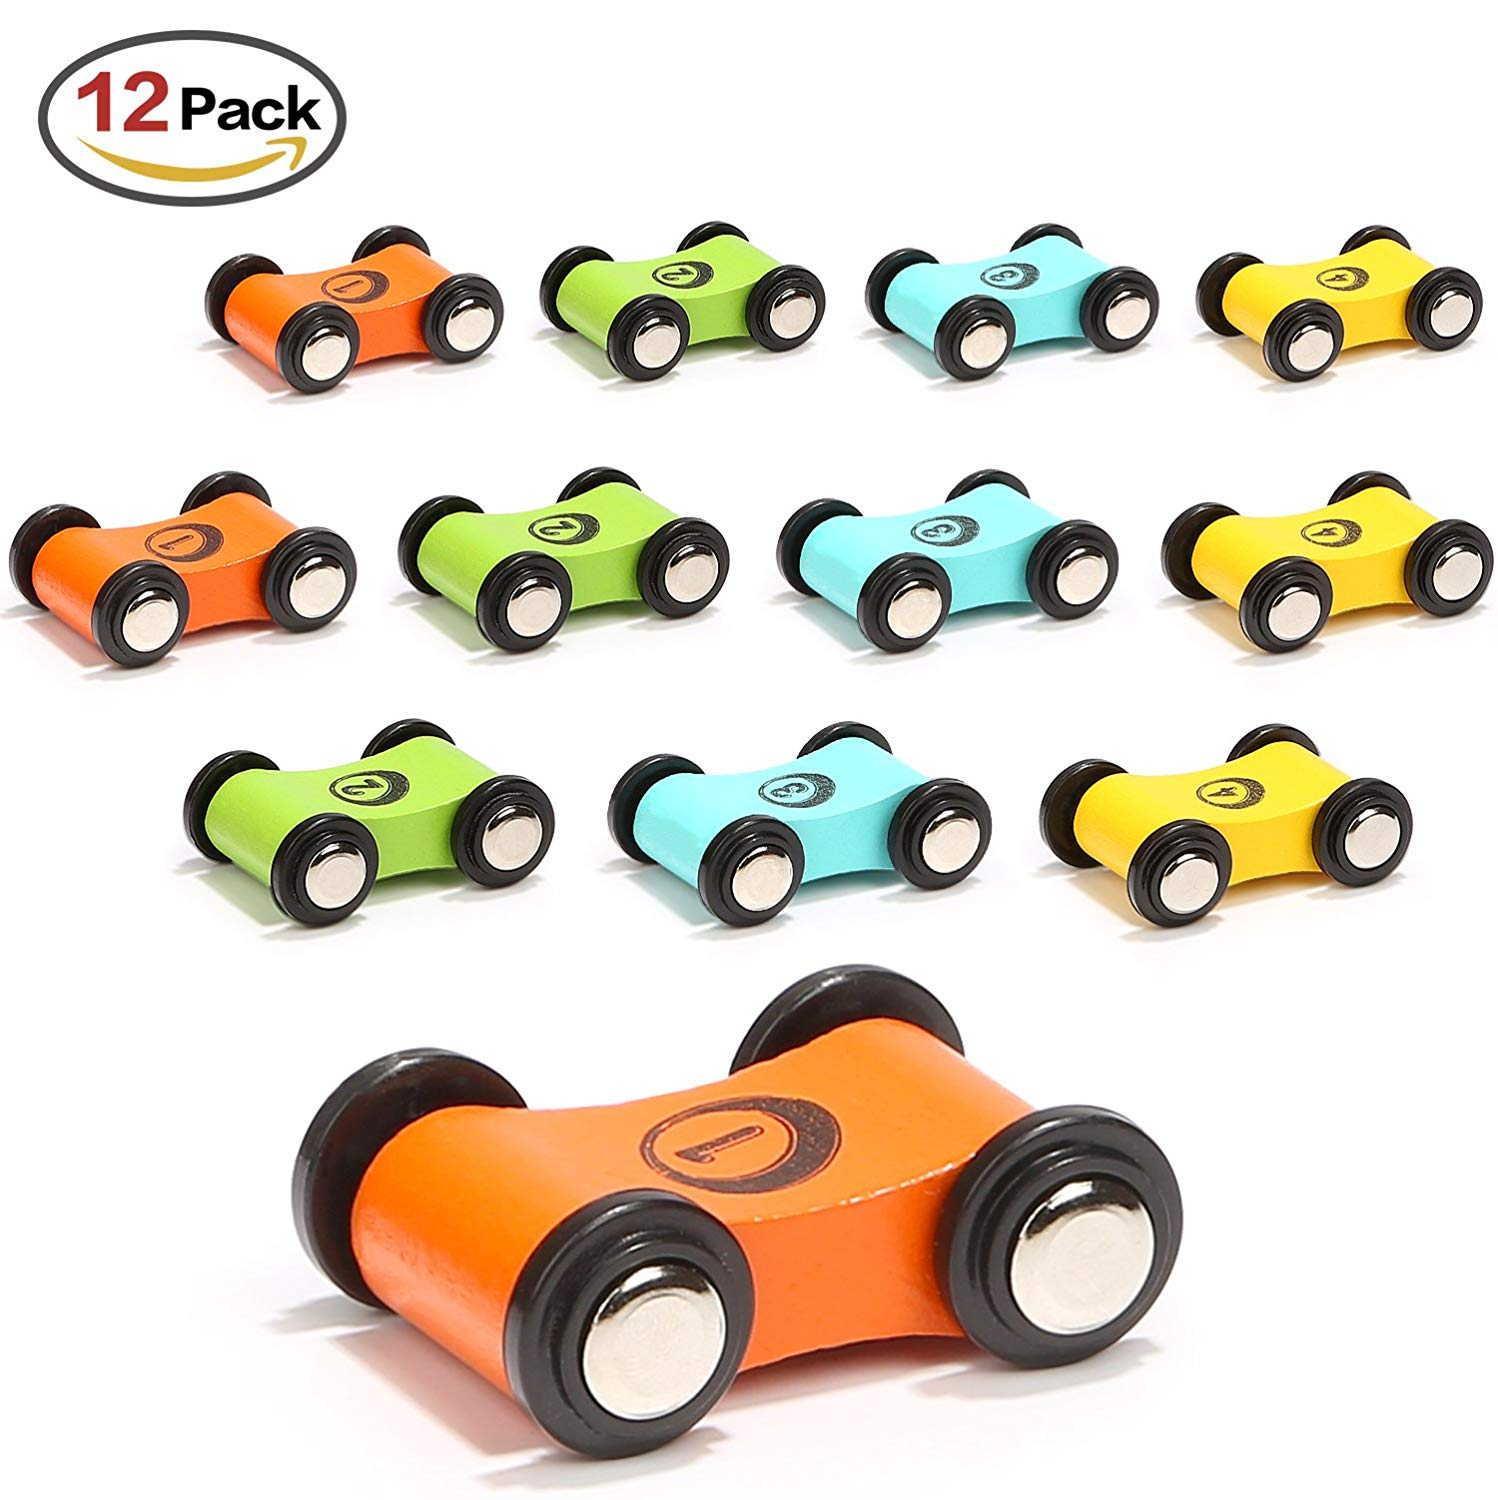 12PCS/Lot Wooden Track Car Toys Small Diecast Replacement Tollder Gliding Car for Kids Turn back Ramp Car Racing Games image